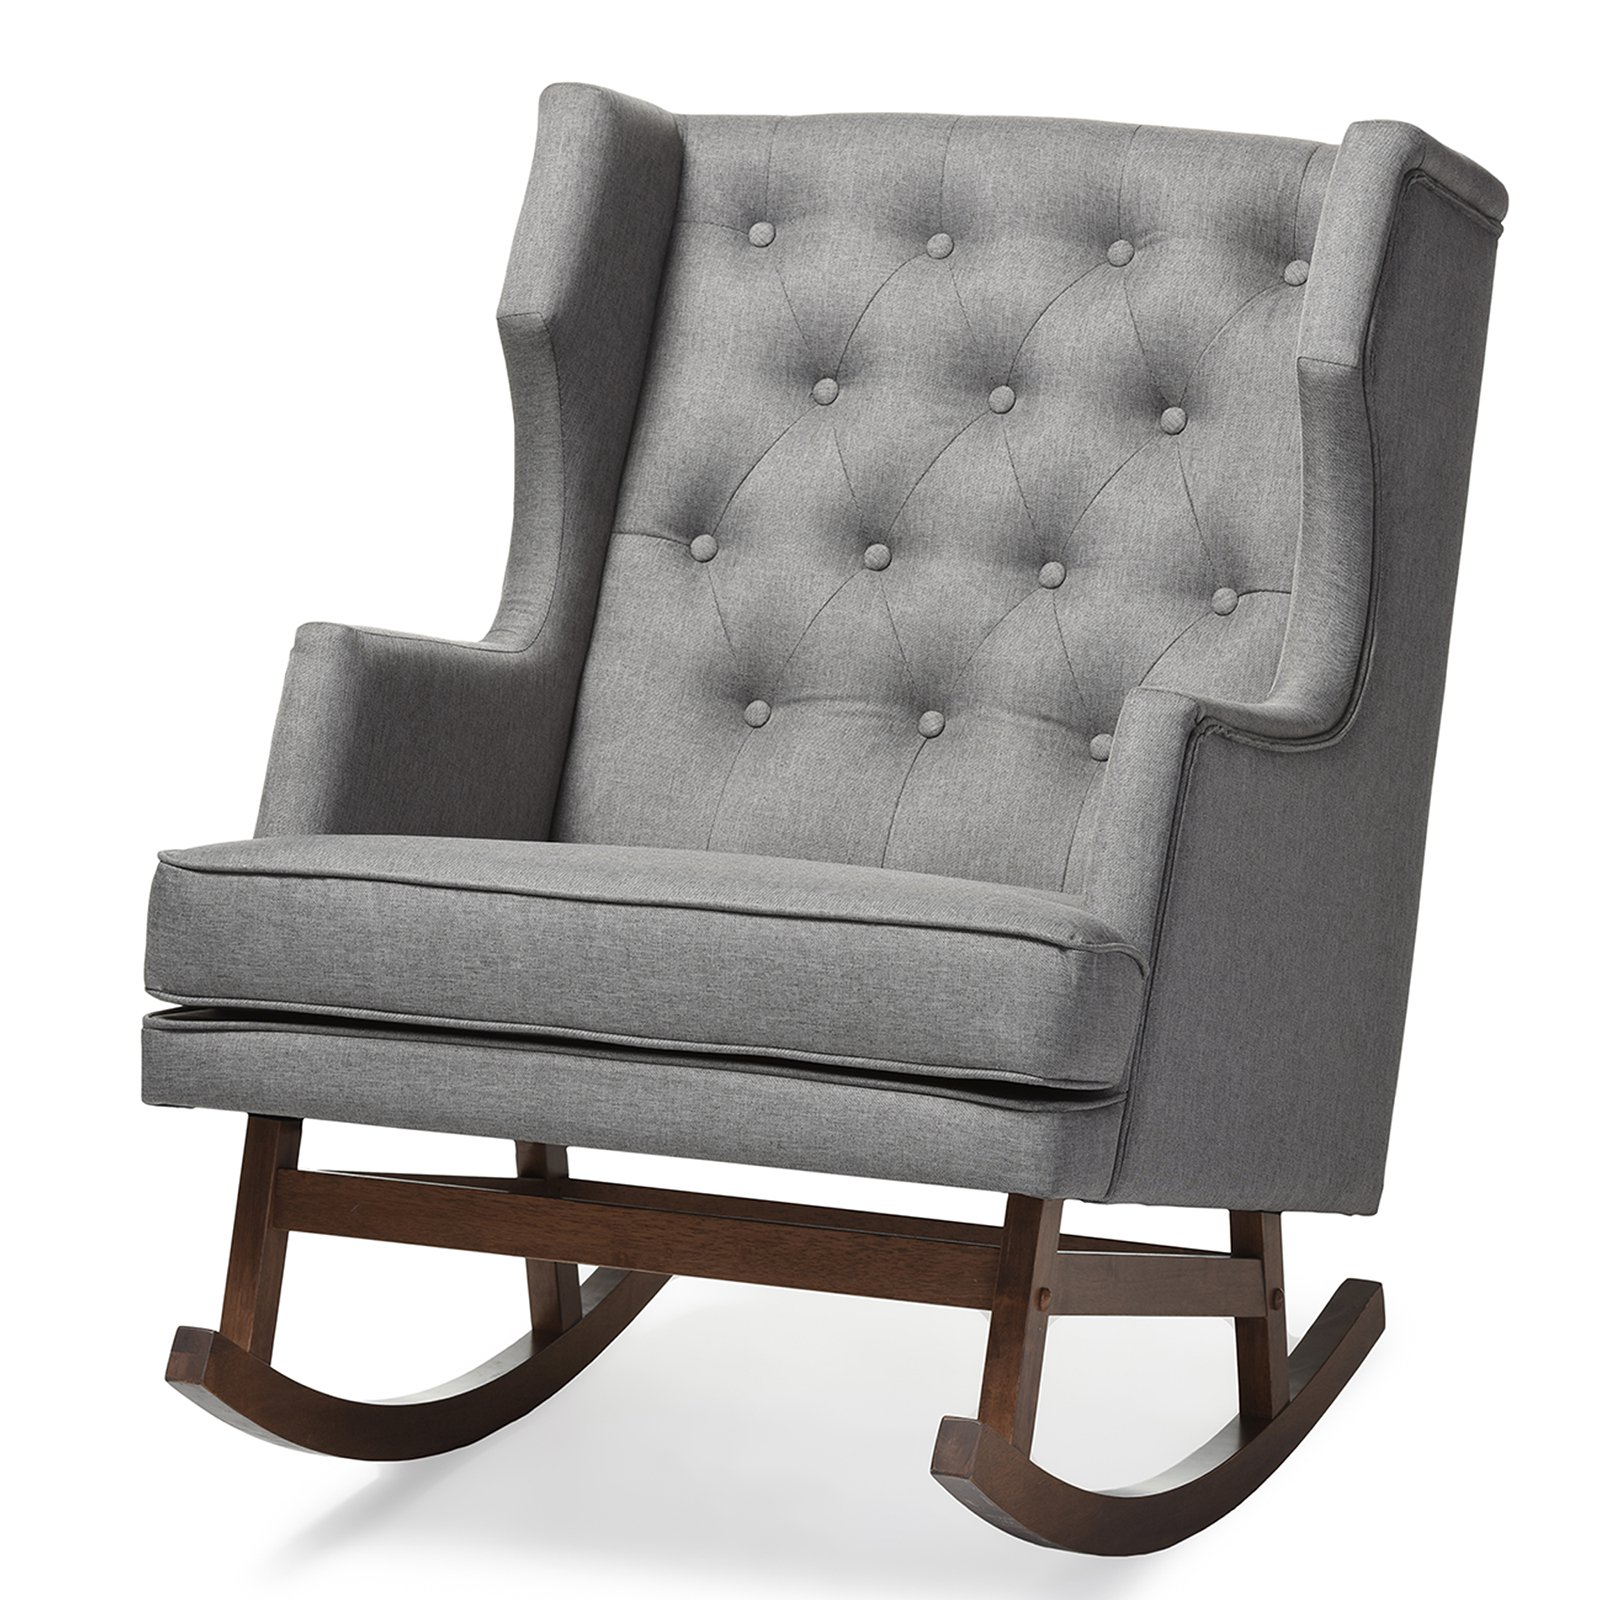 Baxton Studio Iona Mid-century Retro Modern Wingback Rocking Chair